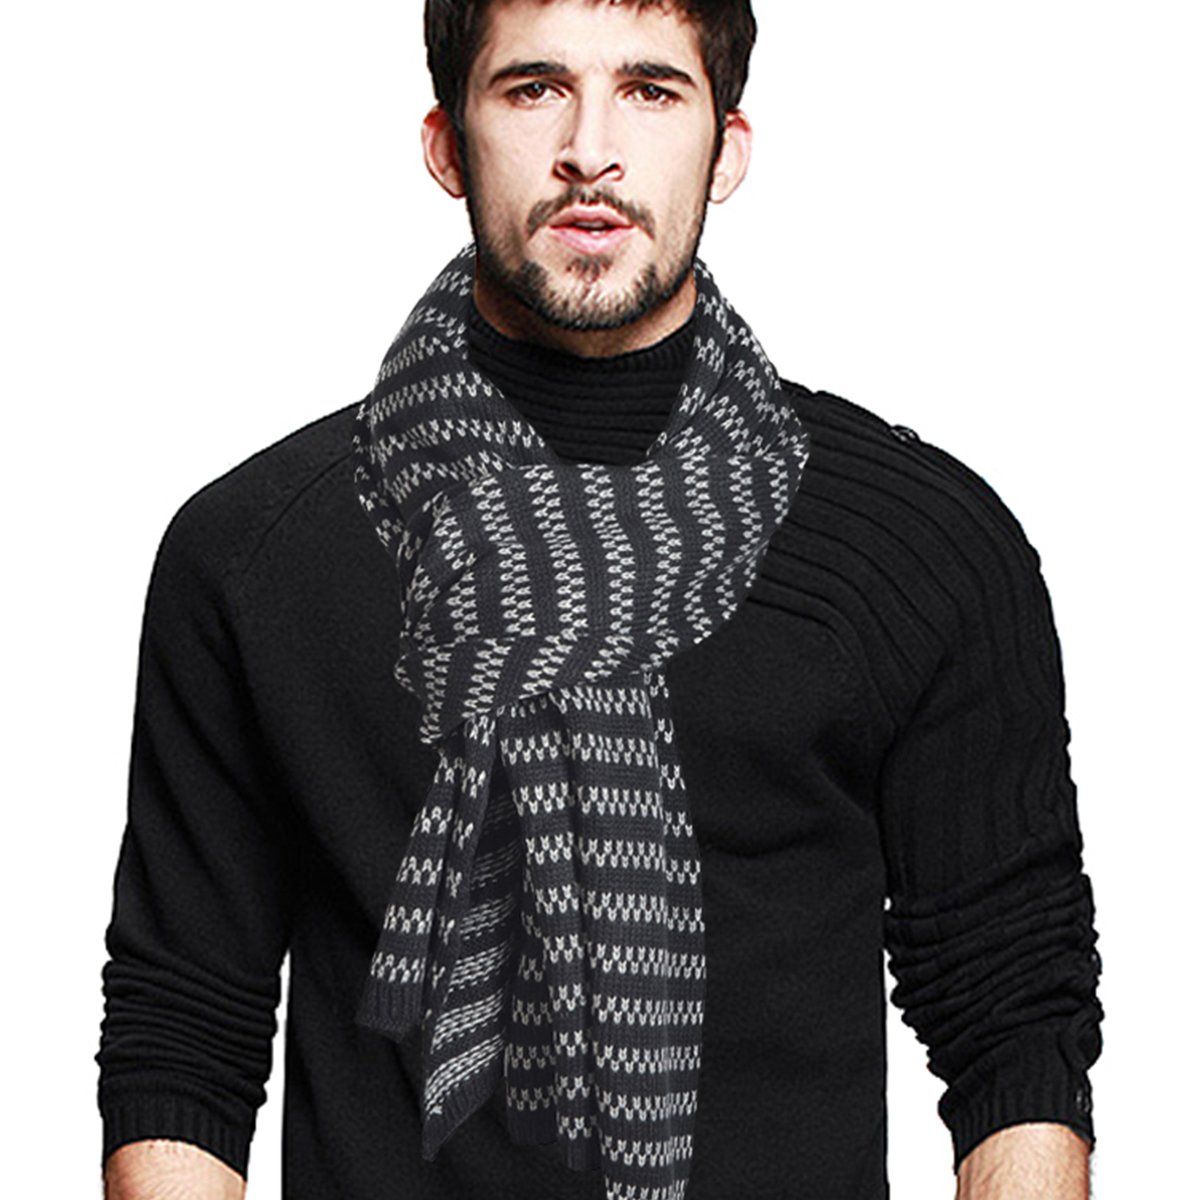 Men's Stripe Long Scarf Soft Warm Thick Knit Winter Scarves (Black) VECRY CF-E5071-Black